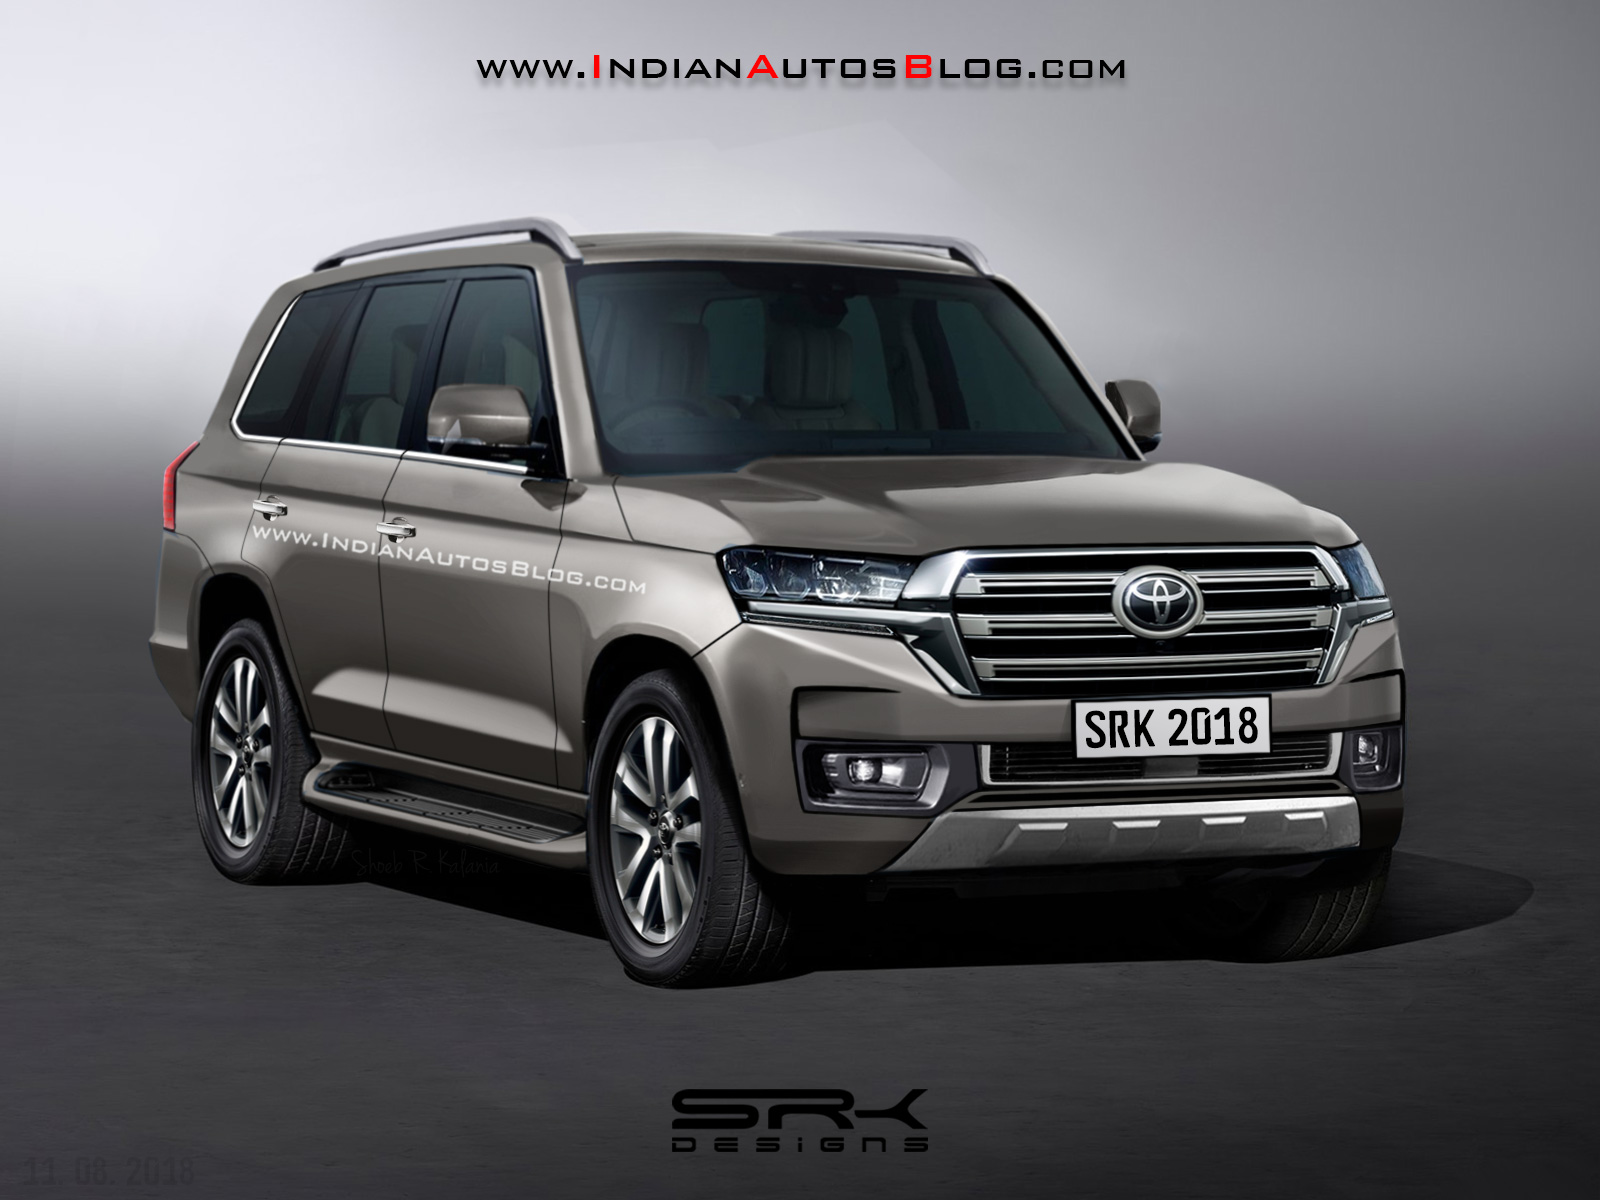 67 The 2020 Land Cruiser Price and Review